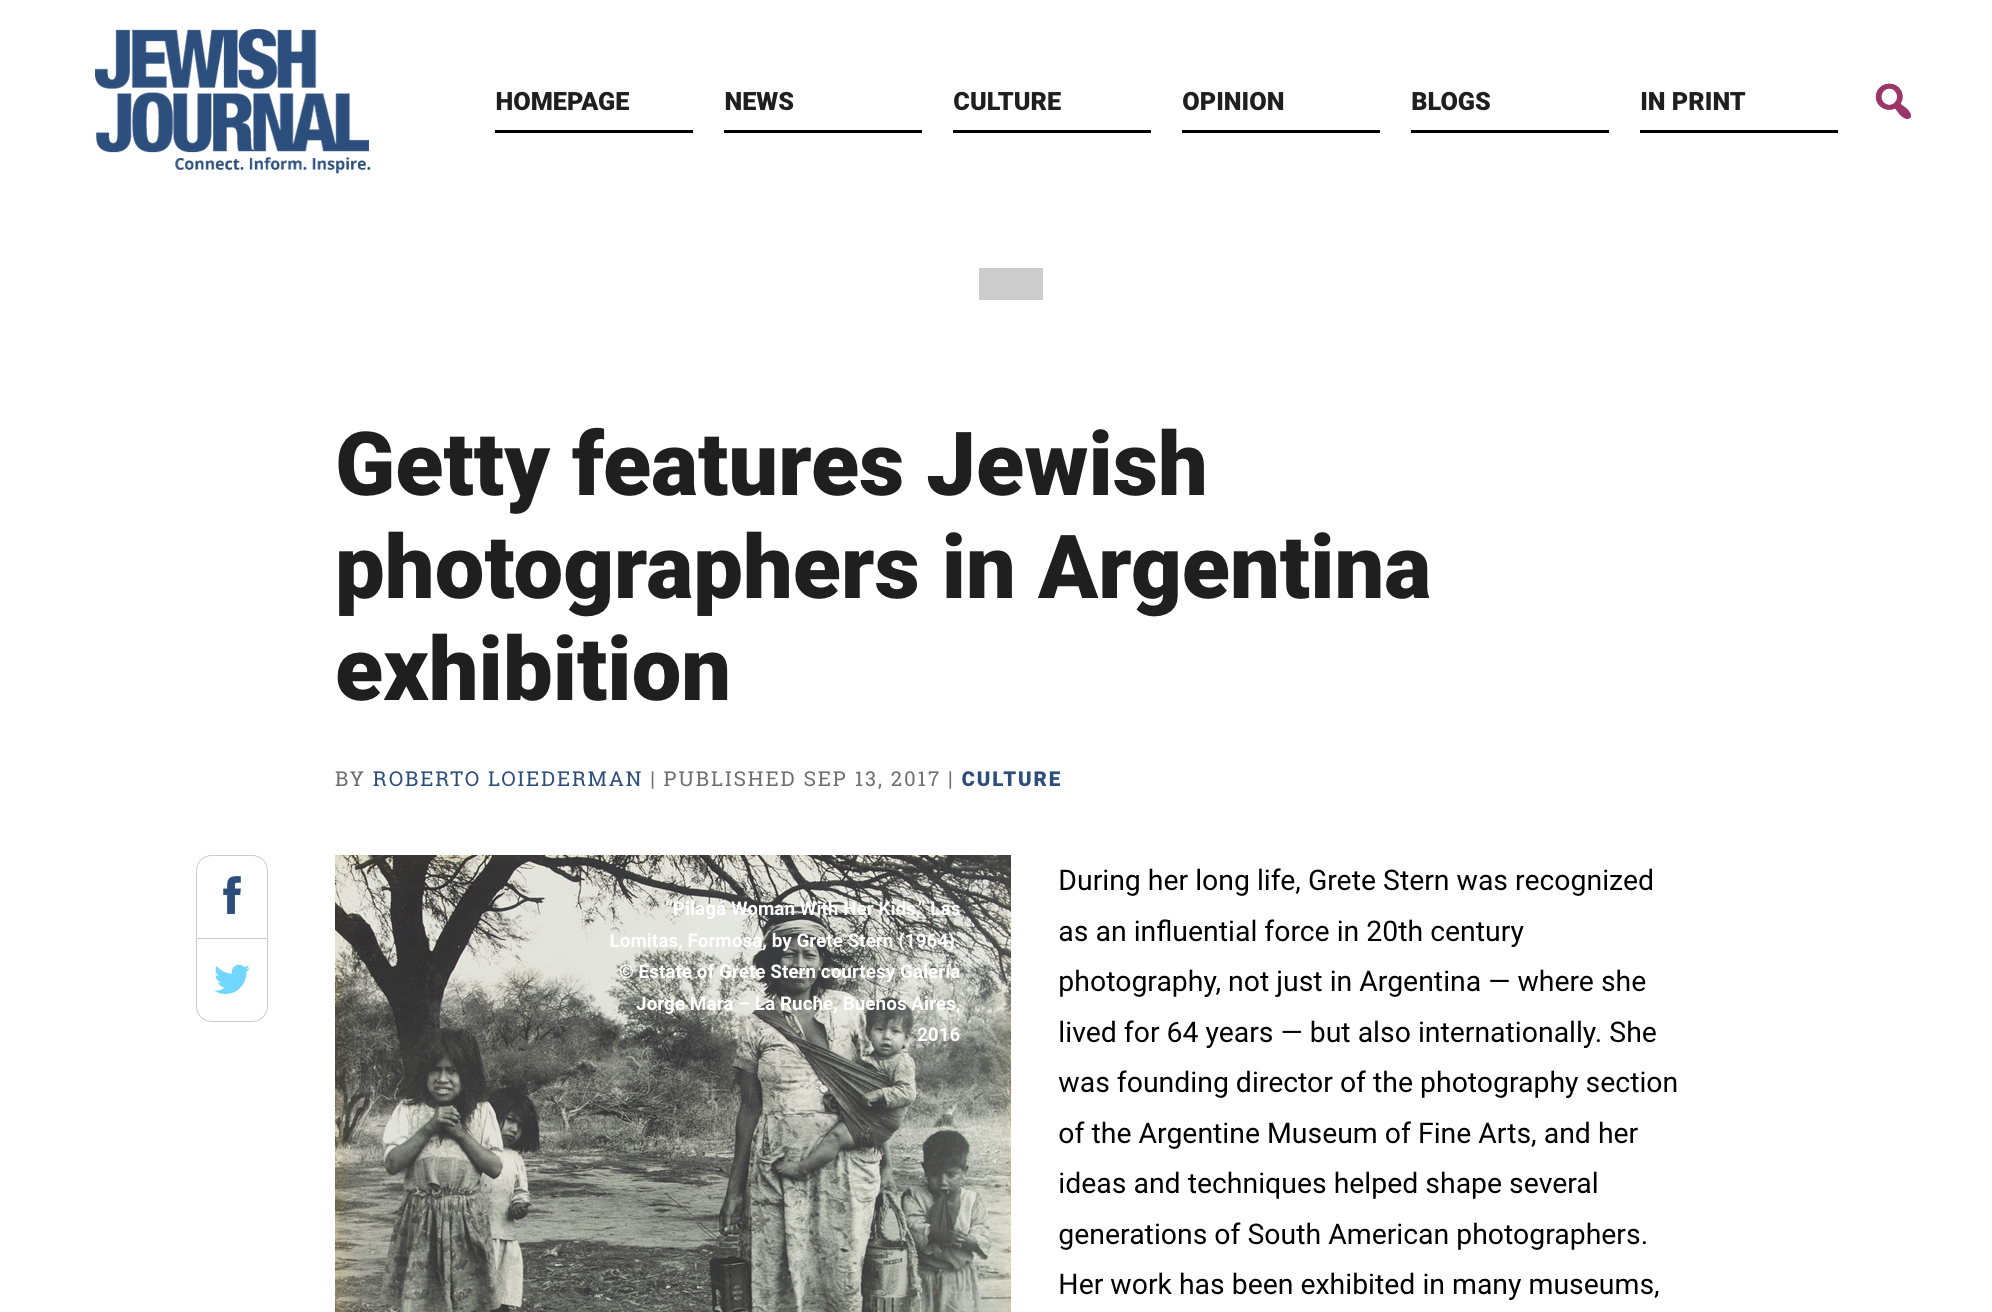 Getty features Jewish photographers in Argentina exhibition - Jewish Journal - September 13, 2017